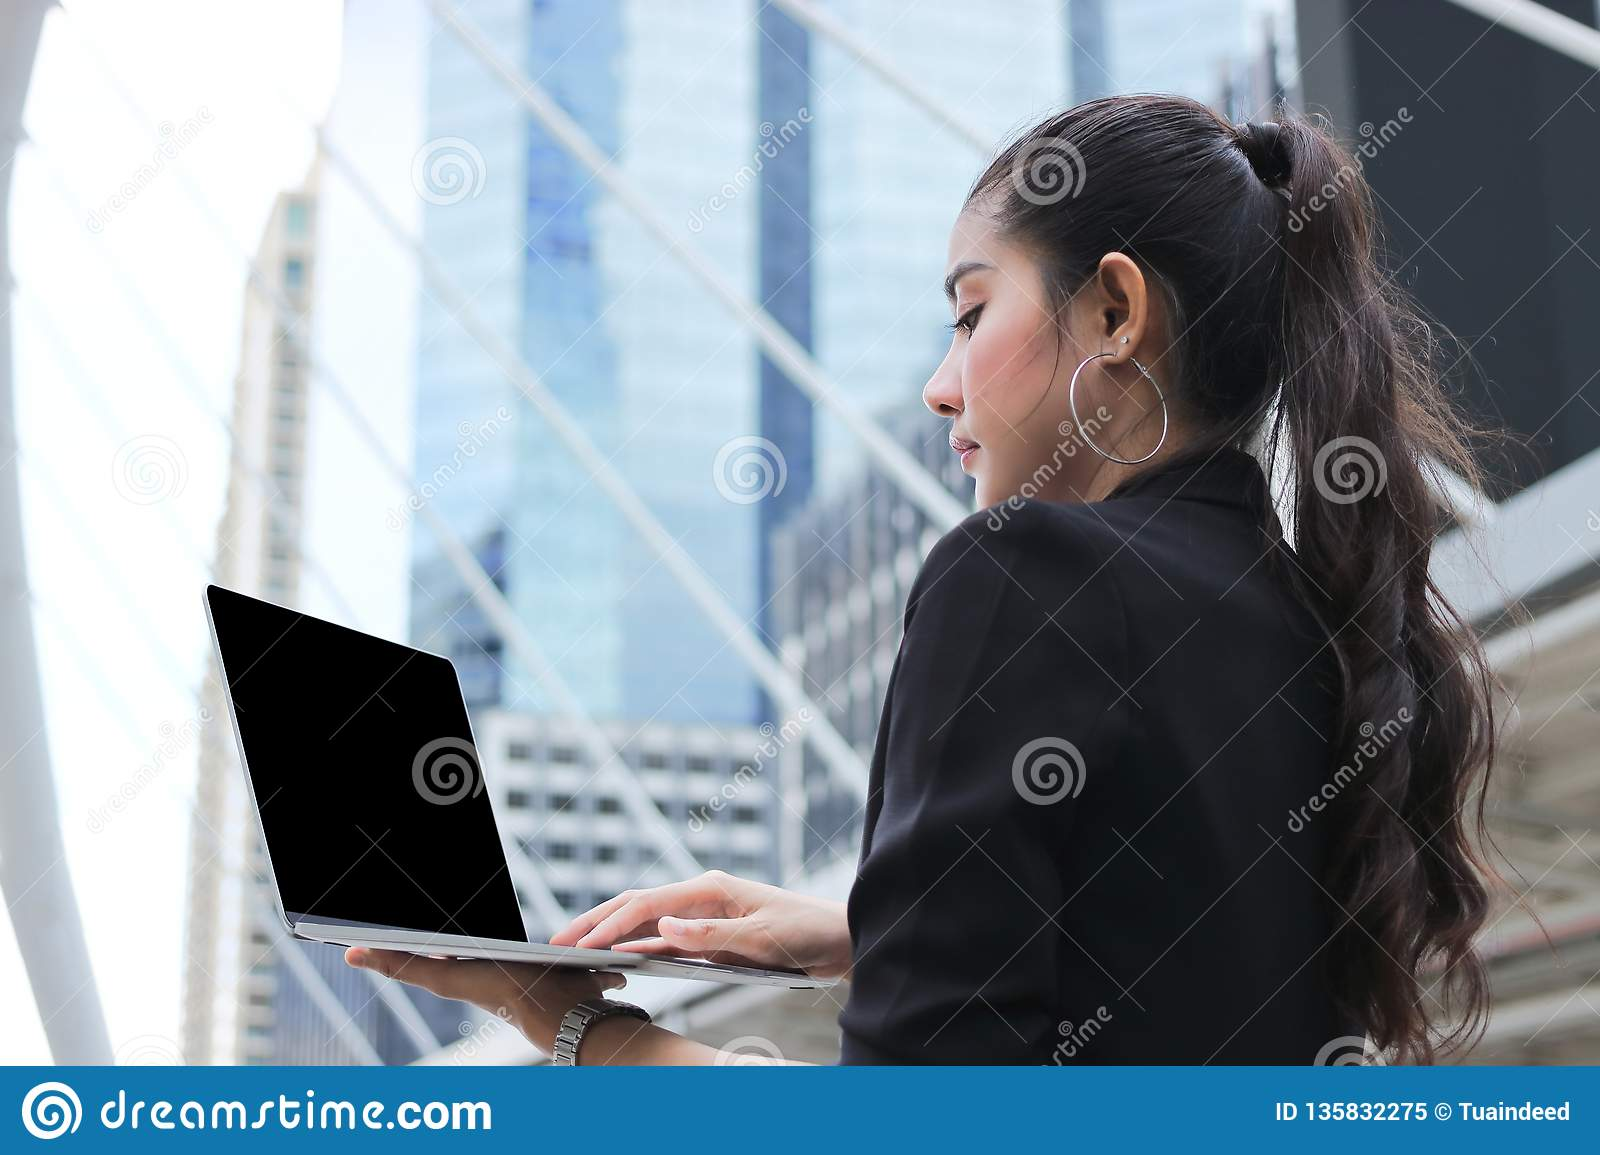 Leadership young Asian business woman working with laptop modern skyscrapers background